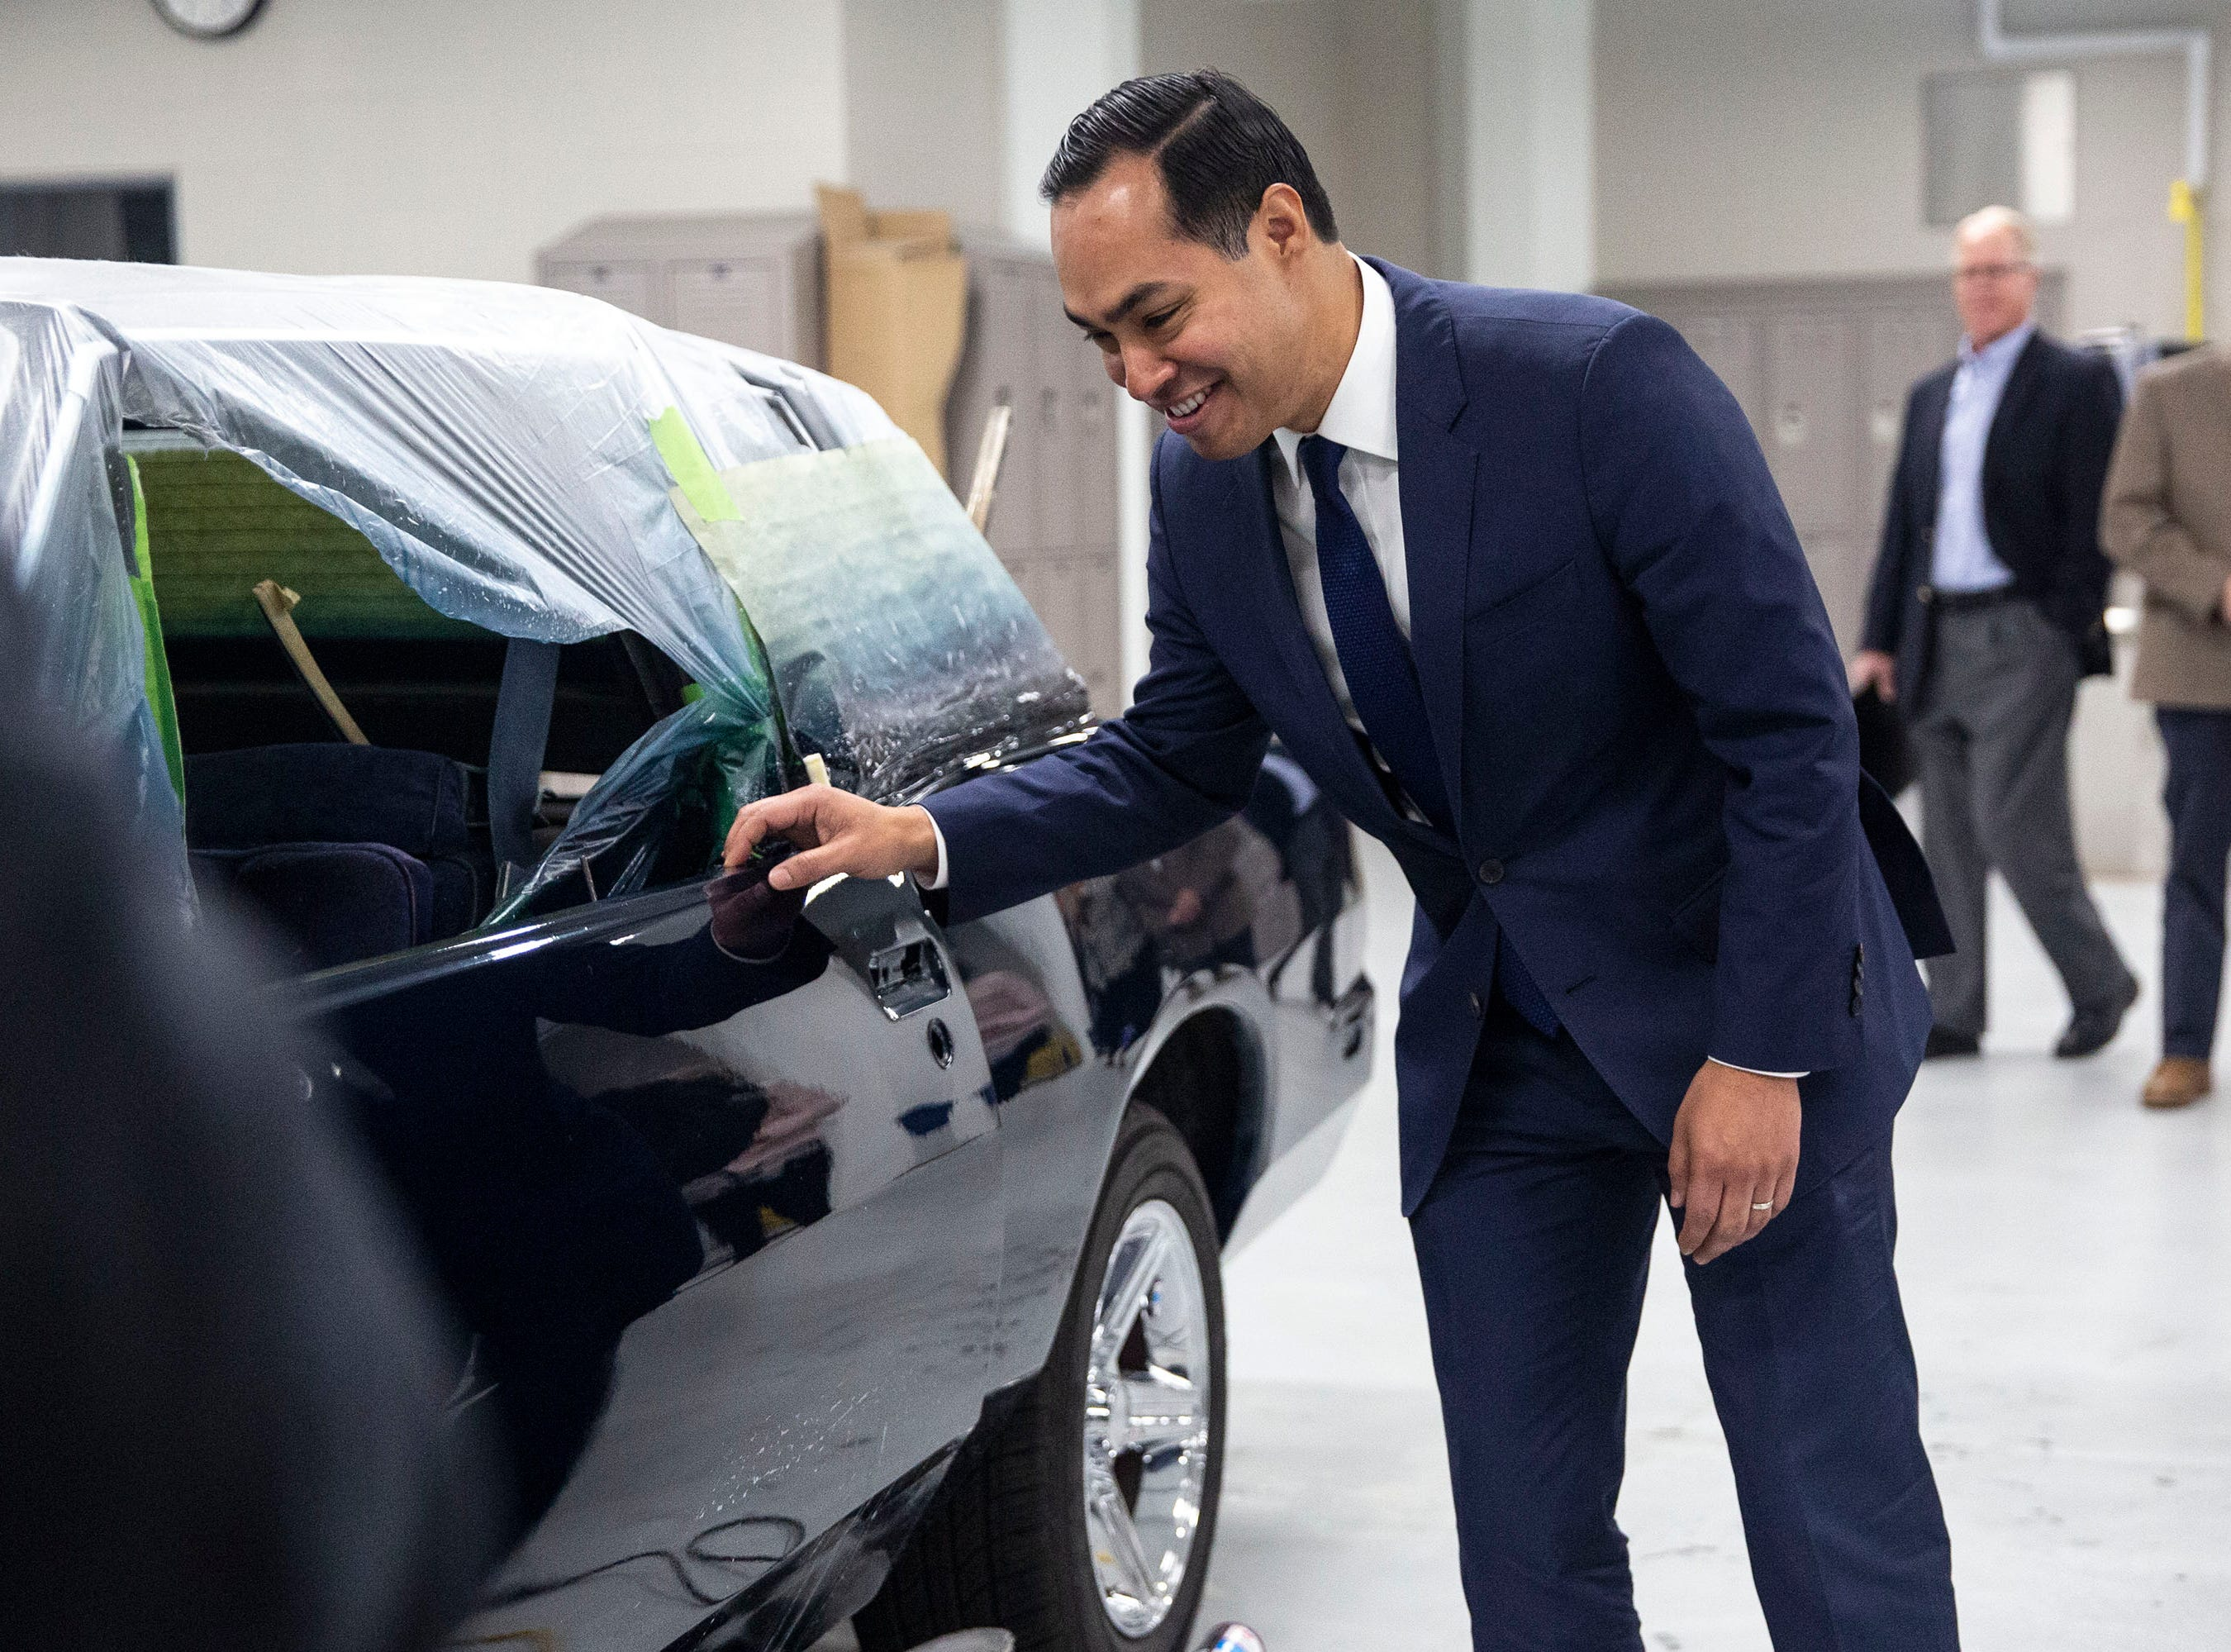 Presidential hopeful Julián Castro gets a closer look at a car's paint work done by studnets in the Central Campus skilled trades academy on Monday, April 15, 2019, in Des Moines.